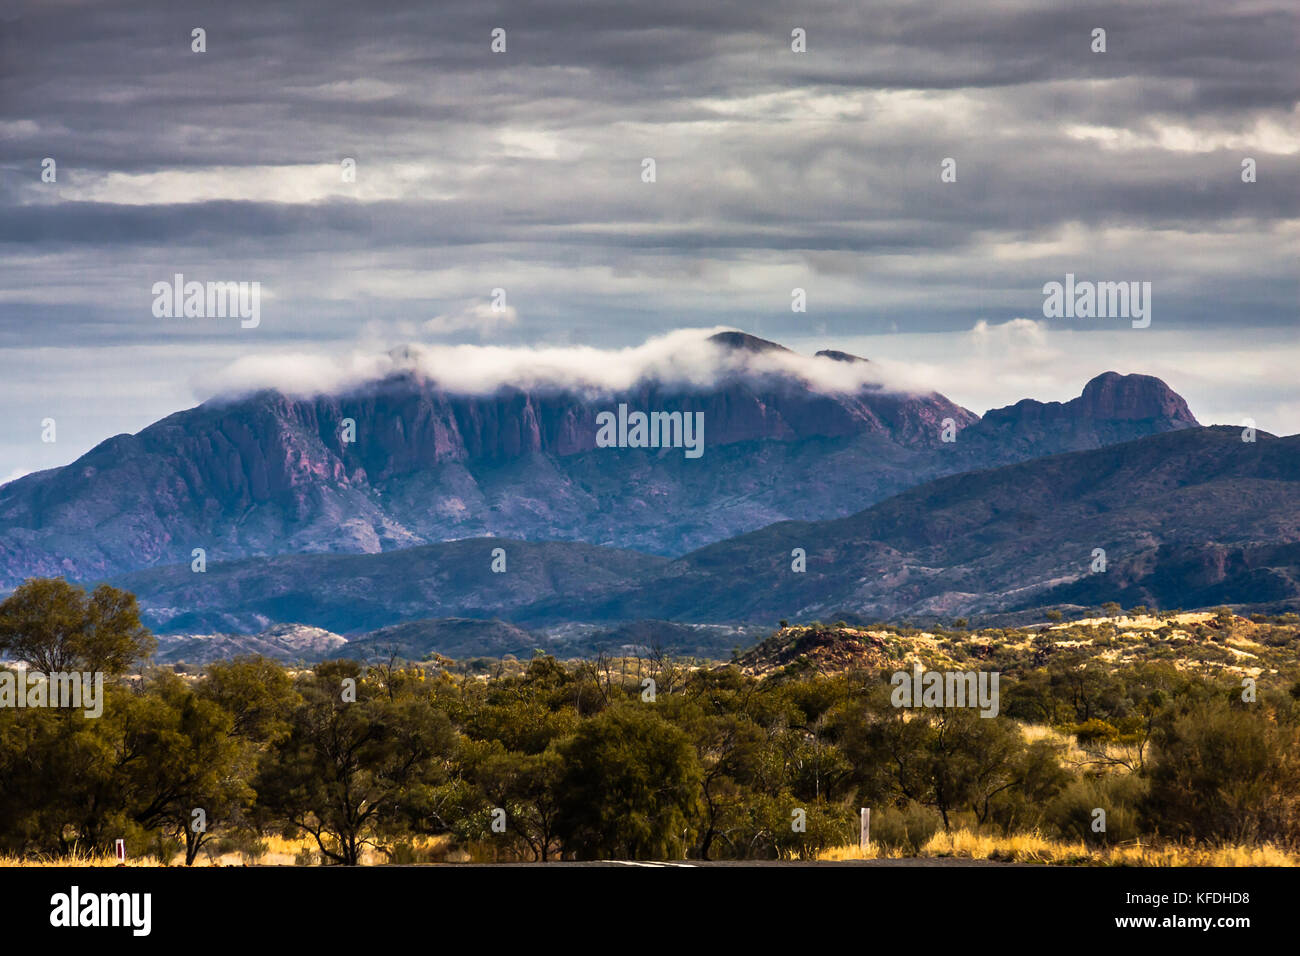 West MacDonnell Range National Park, Northern Territory, Australia - Stock Image